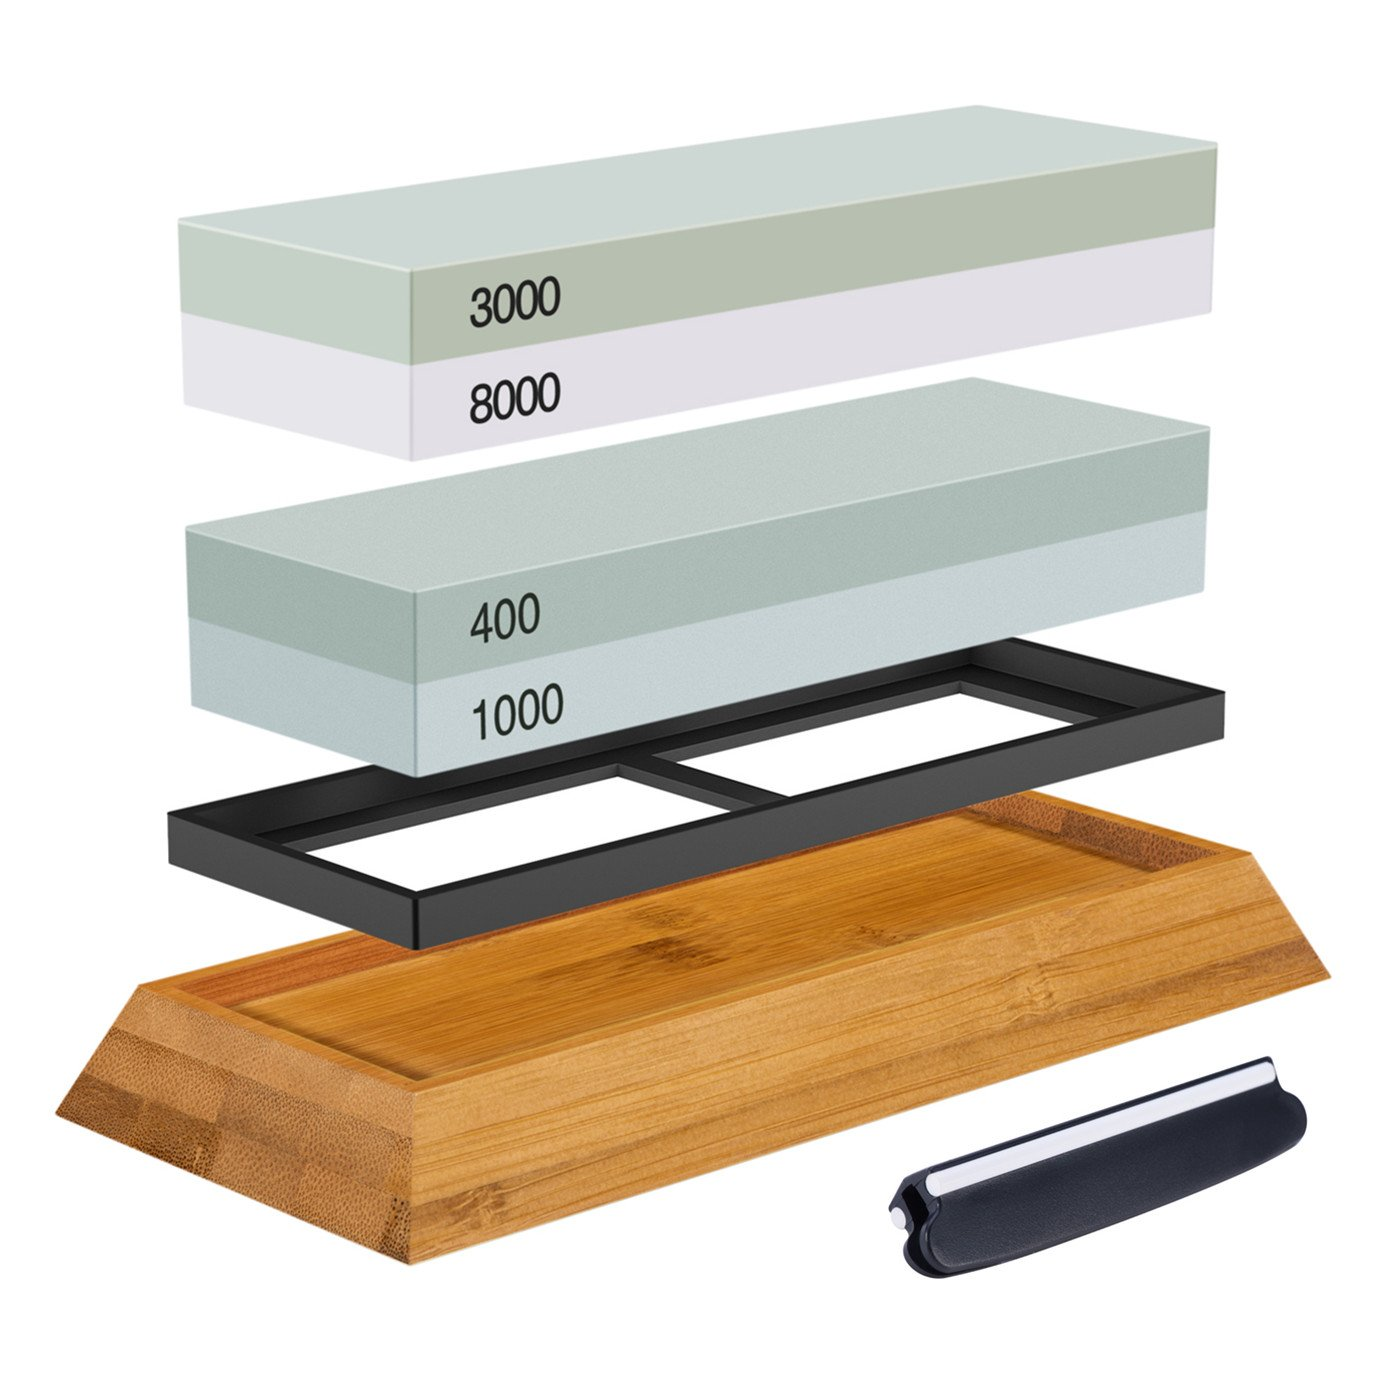 Premium Knife Sharpening Stone Kit, ASEL 4 Side 400/1000 3000/8000 Grit Whetstone, Best Kitchen Blade Sharpener Stone, Non-Slip Bamboo Base and Bonus Angle Guide Included by ASEL